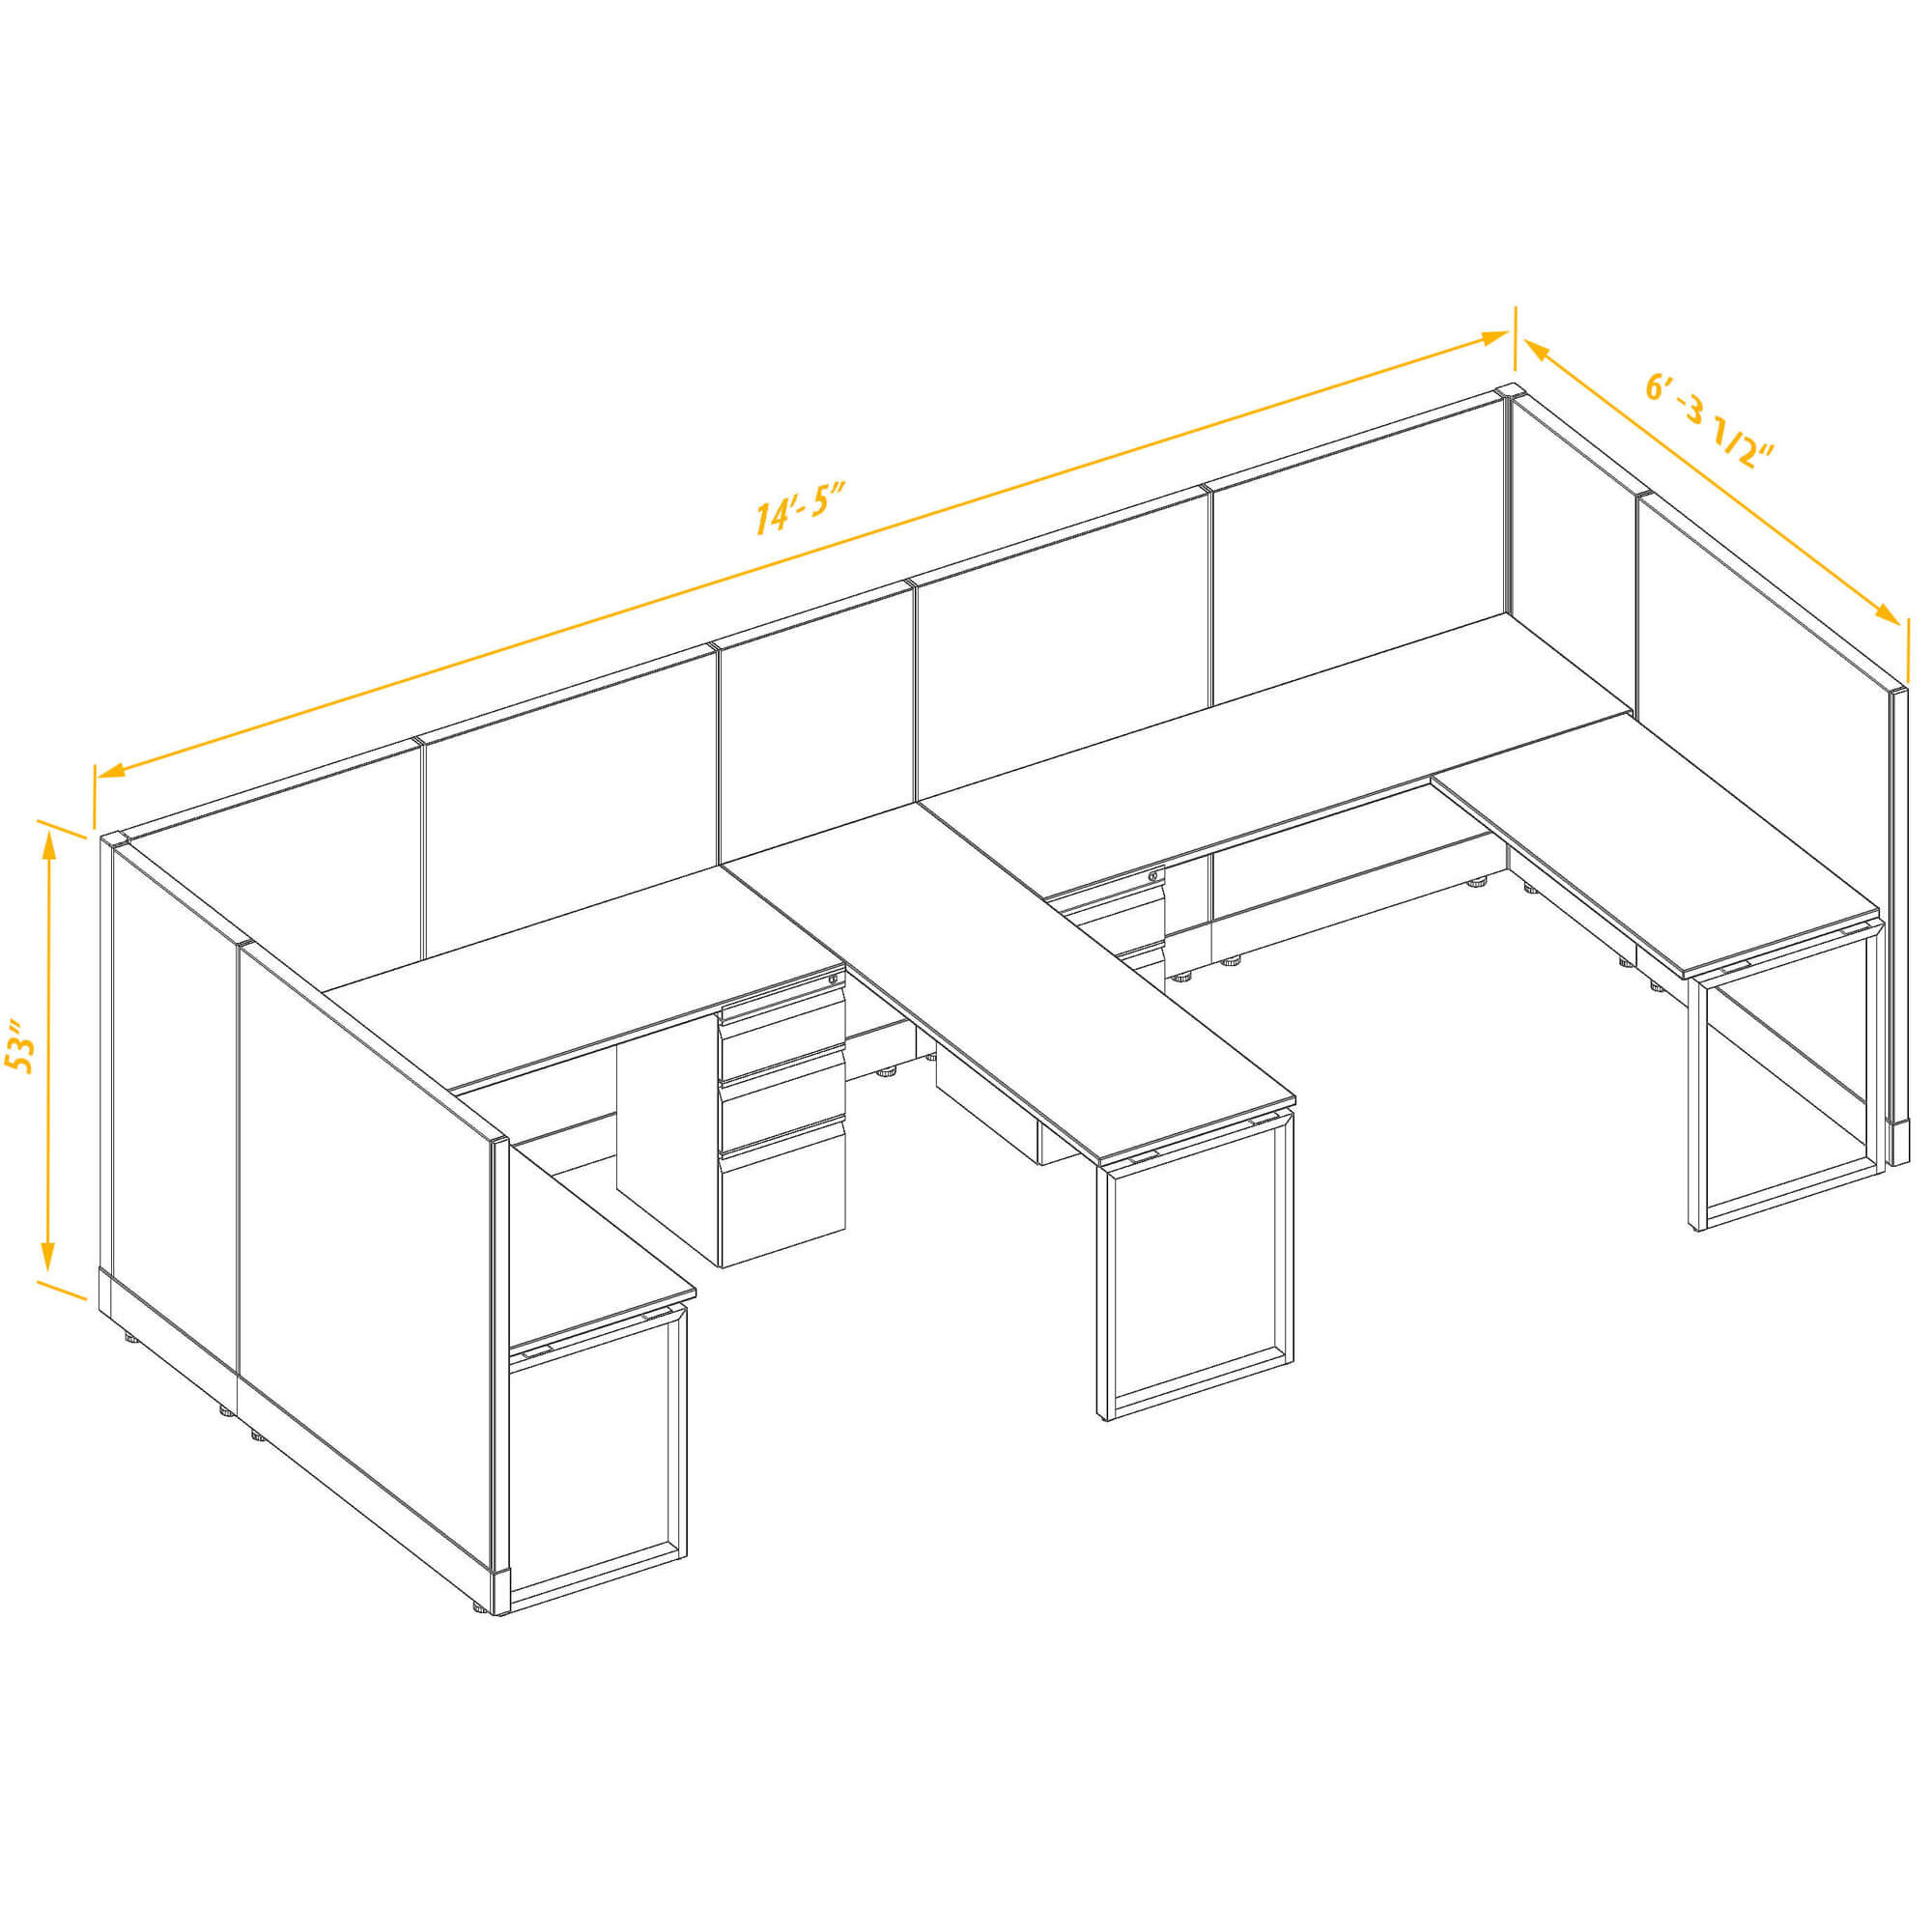 Office workstations CUB 2 53 66 BP PSO